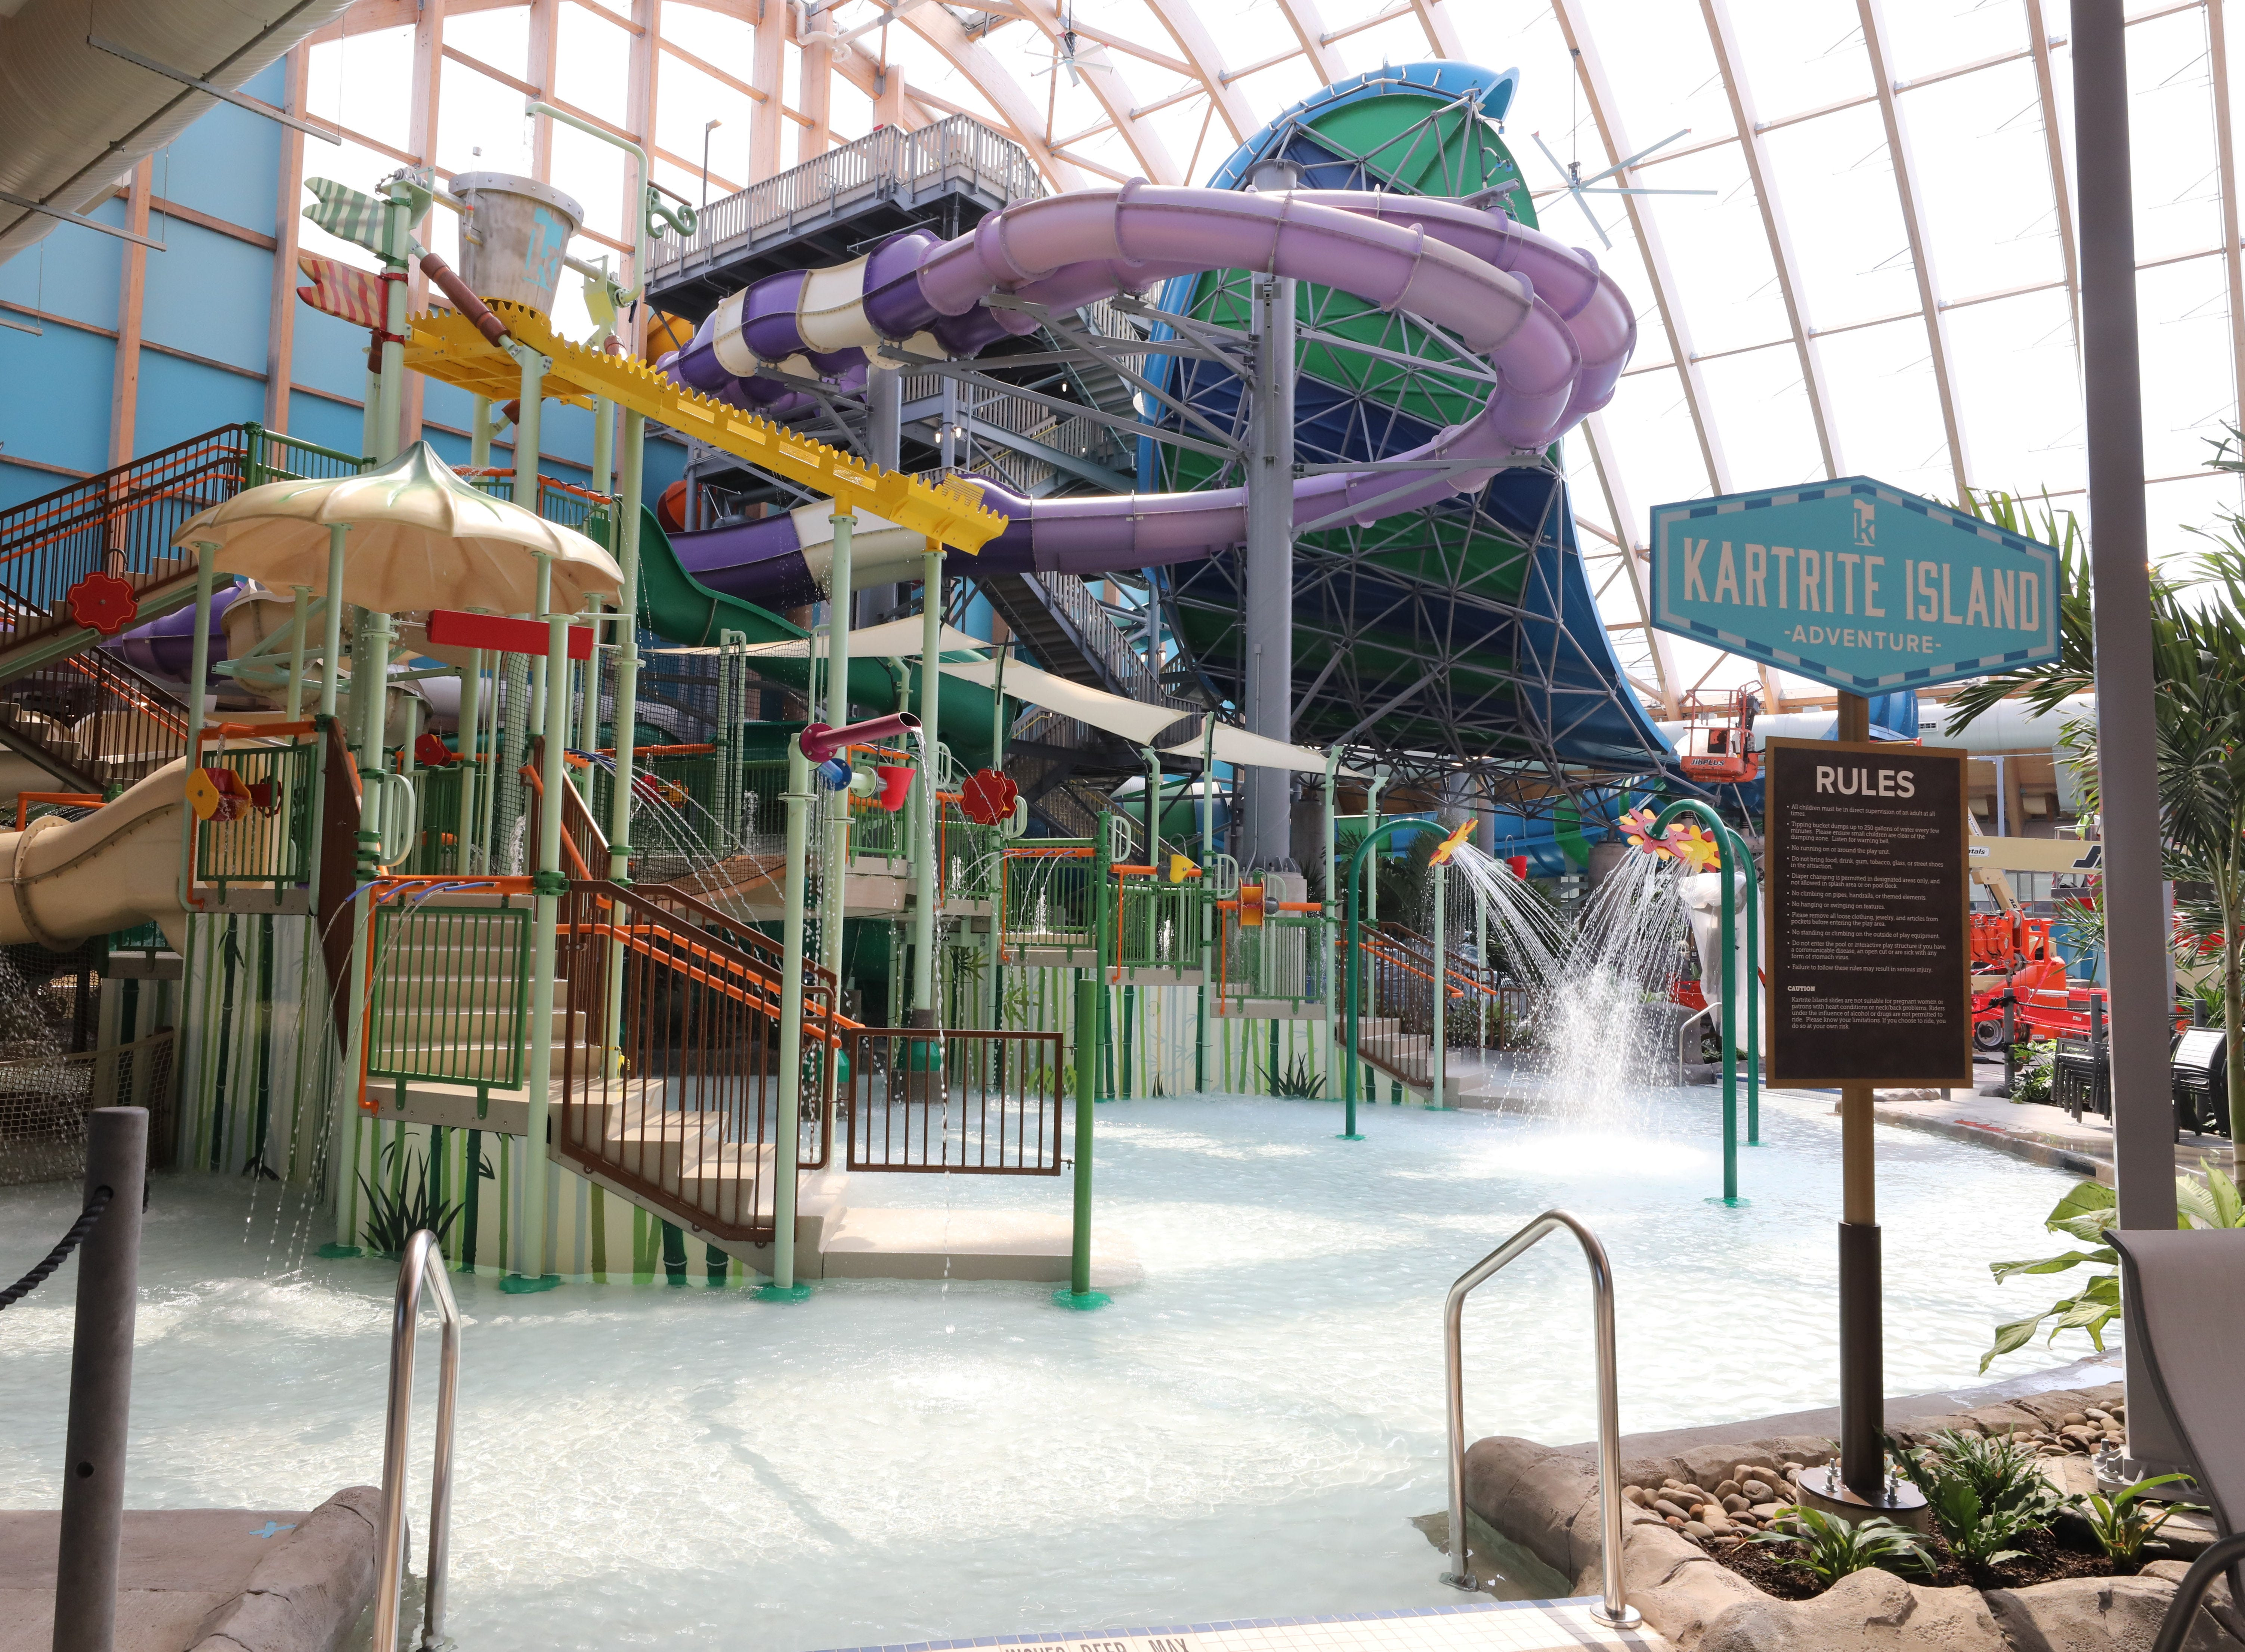 An exclusive, inside look: New York's largest waterpark, The Kartrite, is opening